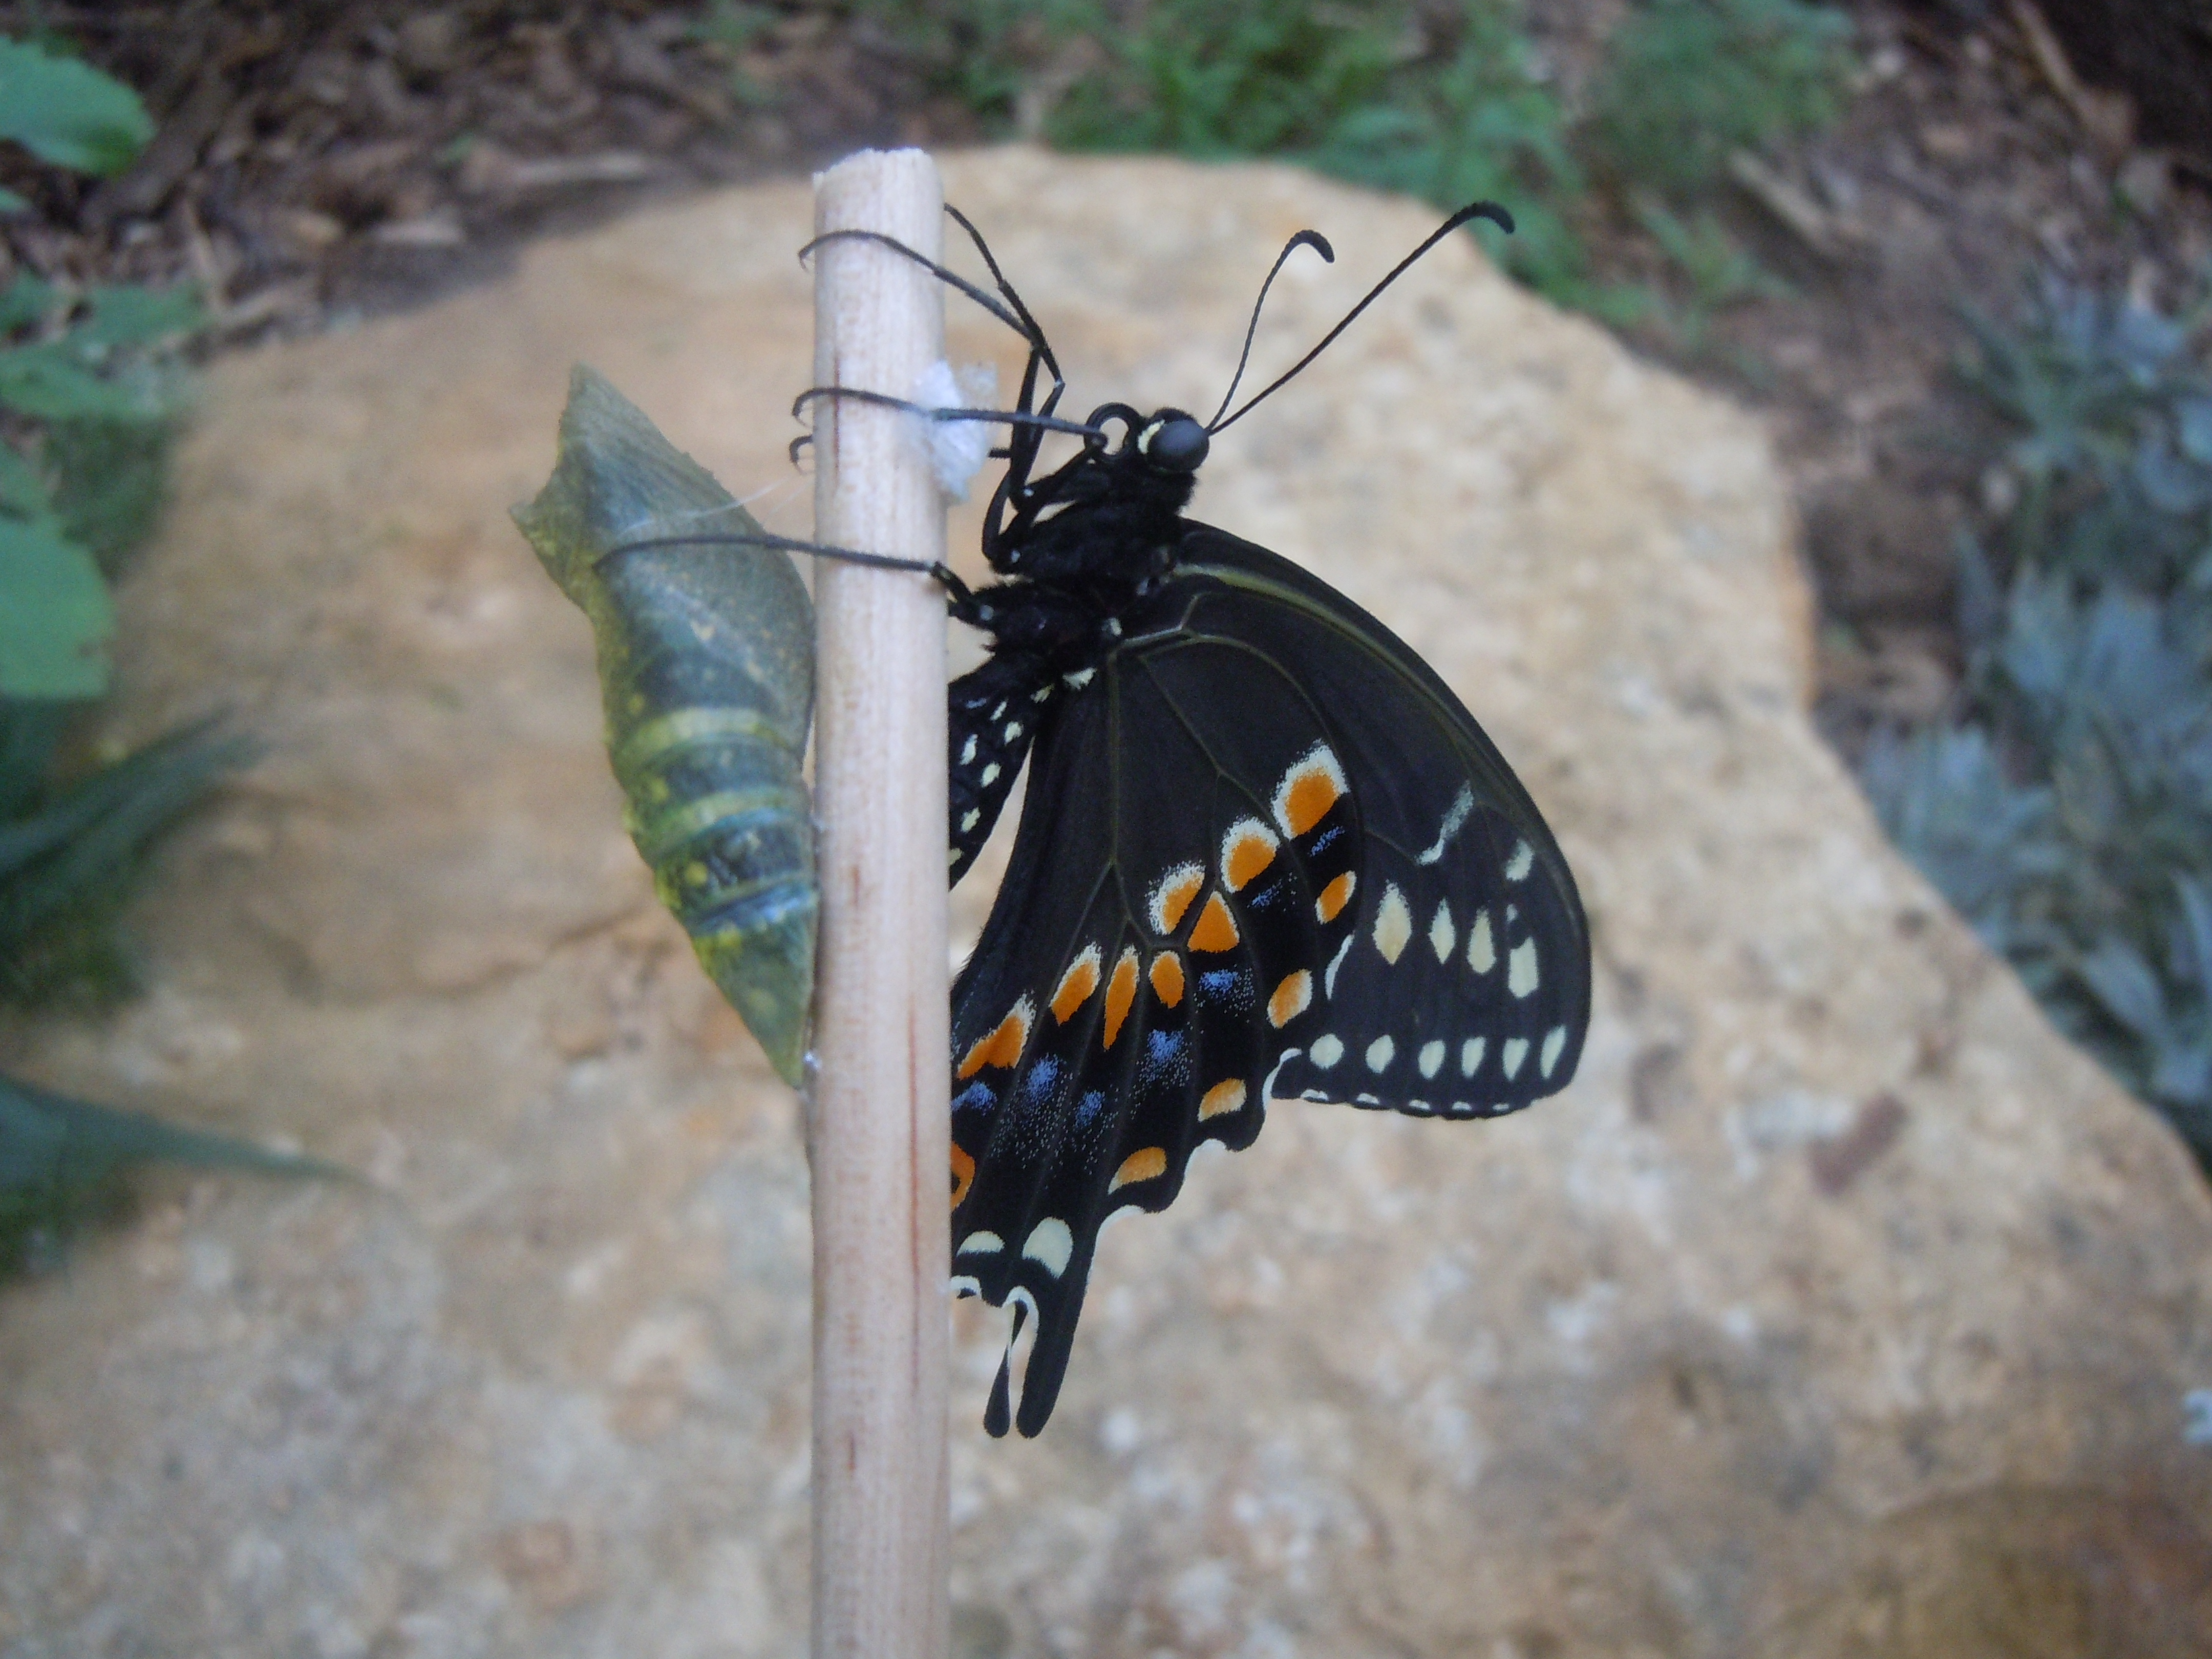 Eastern Swallowtail and Sister Chrysalis on a Chopstick